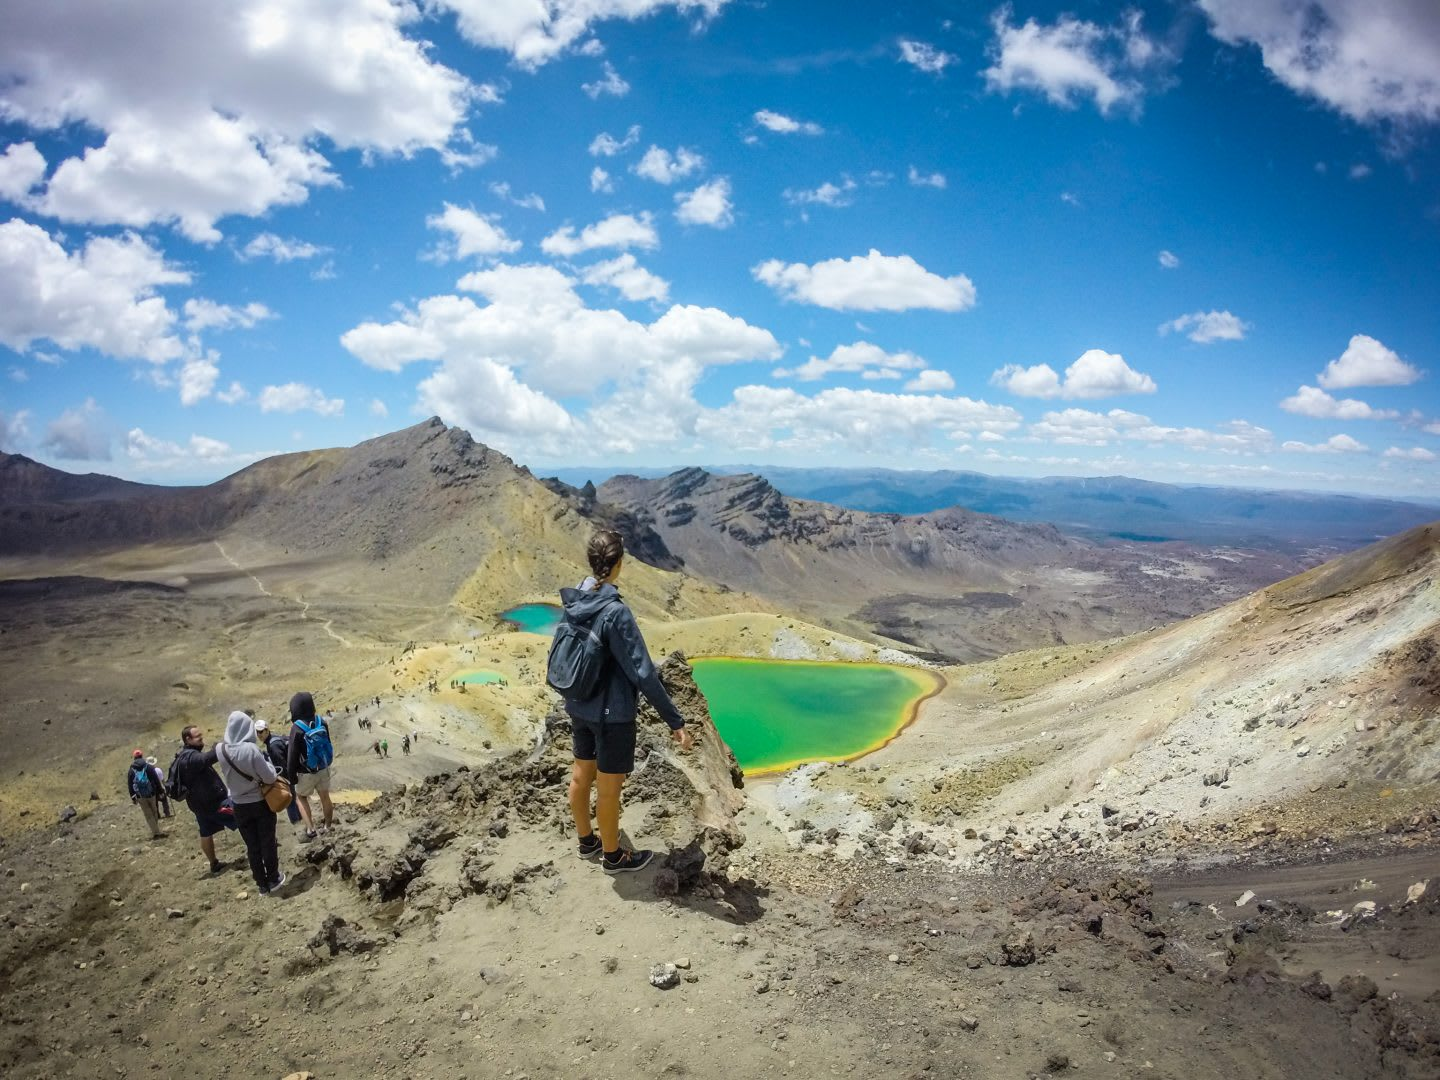 tongariro-crossing-adidas-employee-backpacking-learnings-for-business-climbing-mountains-overcoming-obstacles